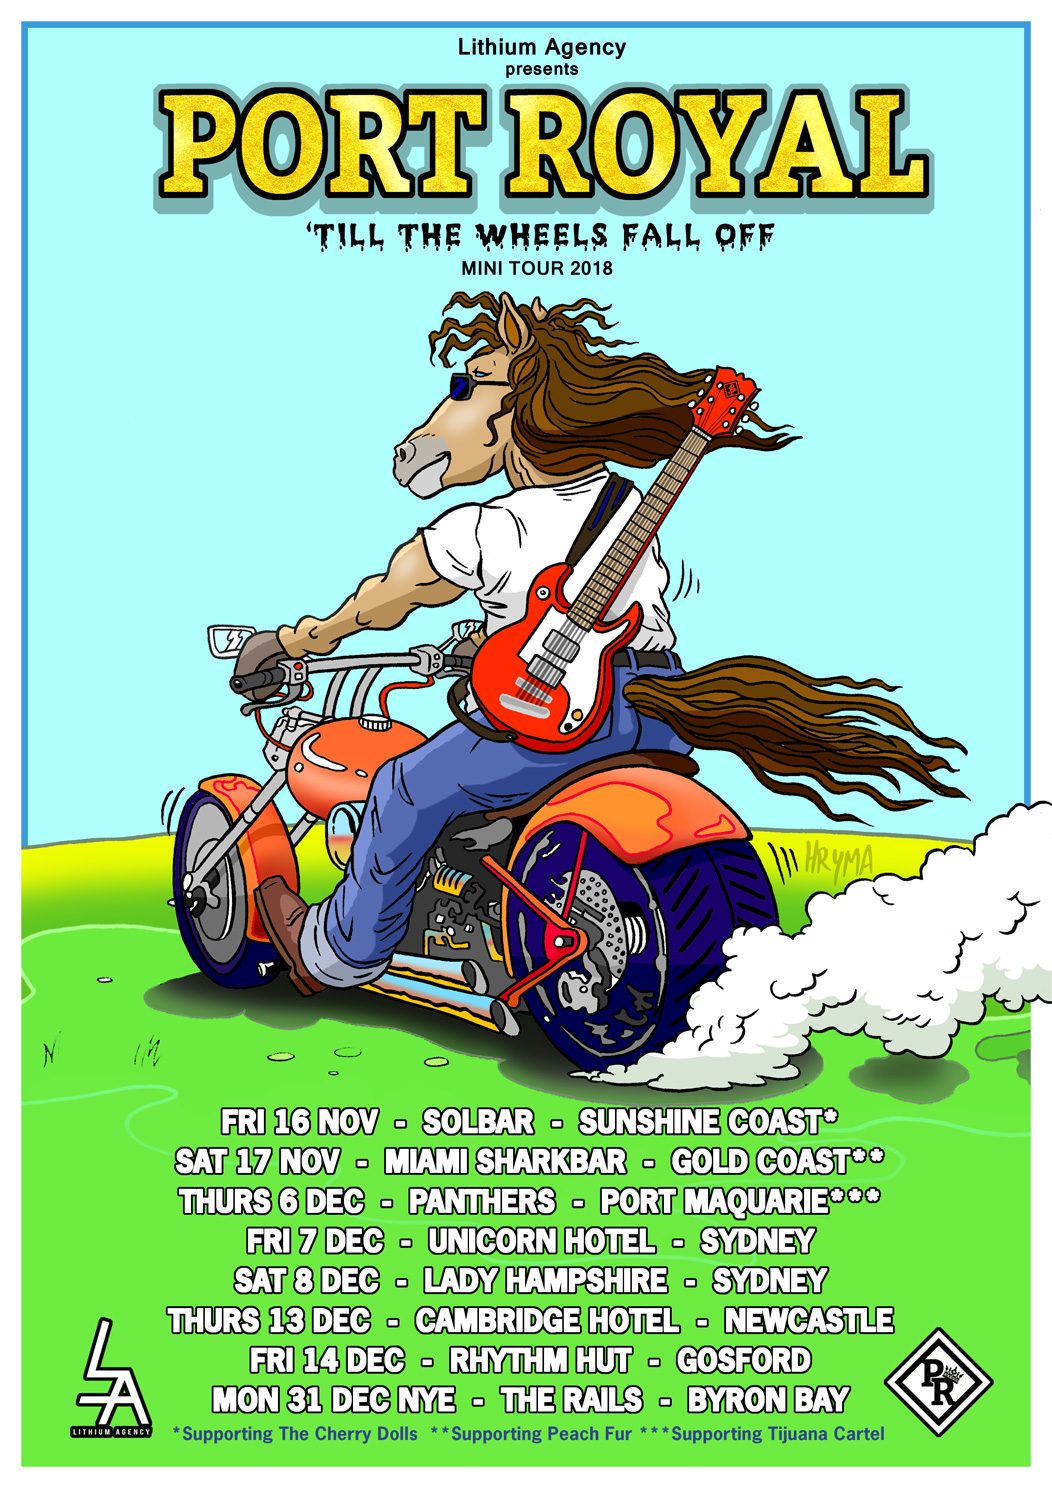 The 'Till the Wheels Fall Off' Mini Tour - Nov to Dec 2018